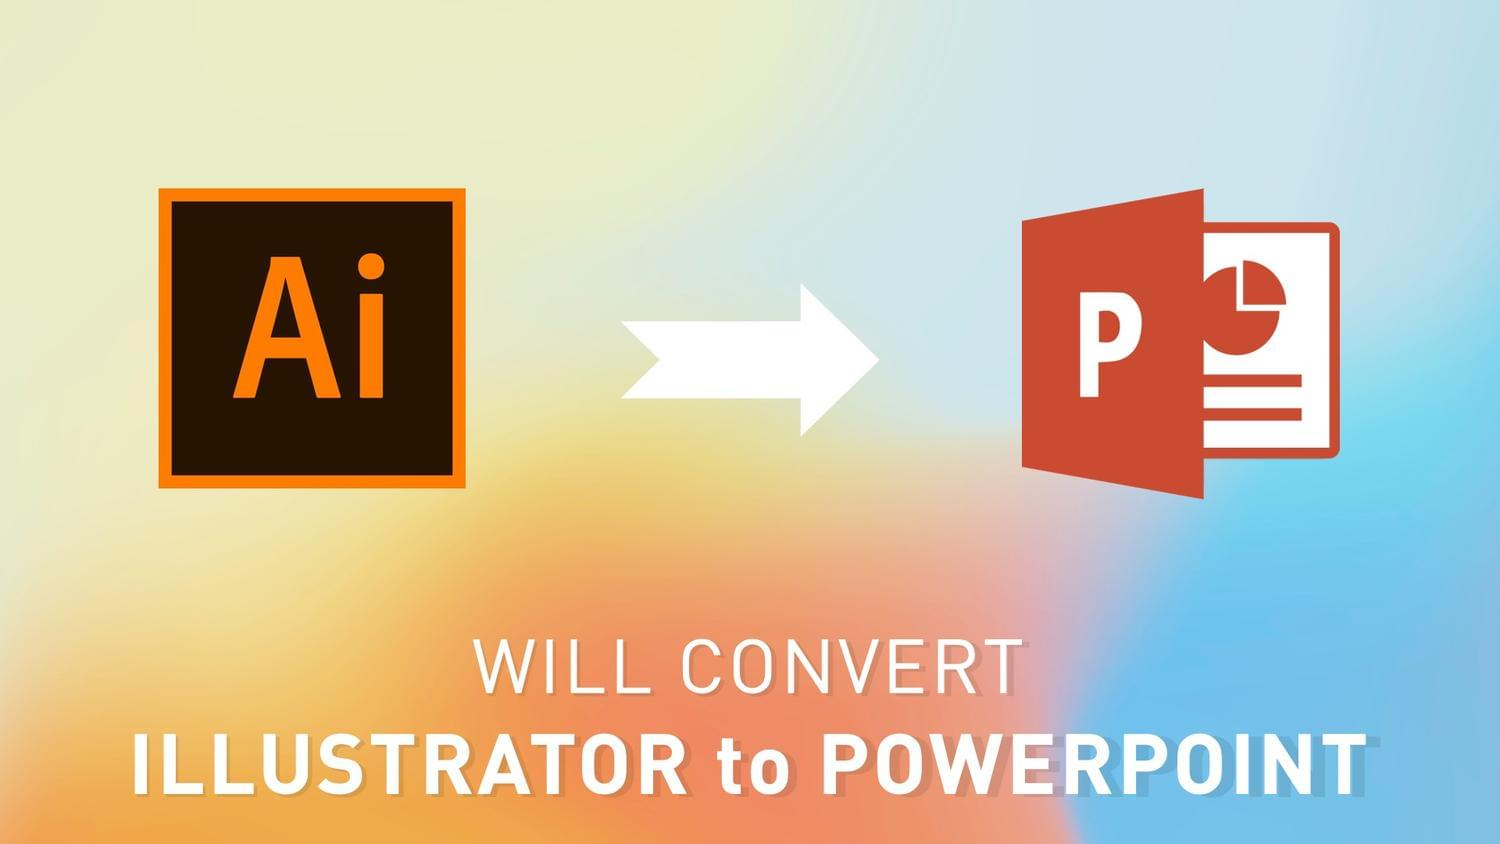 Convert Illustrator to Microsoft PowerPoint by arvaone - 115076